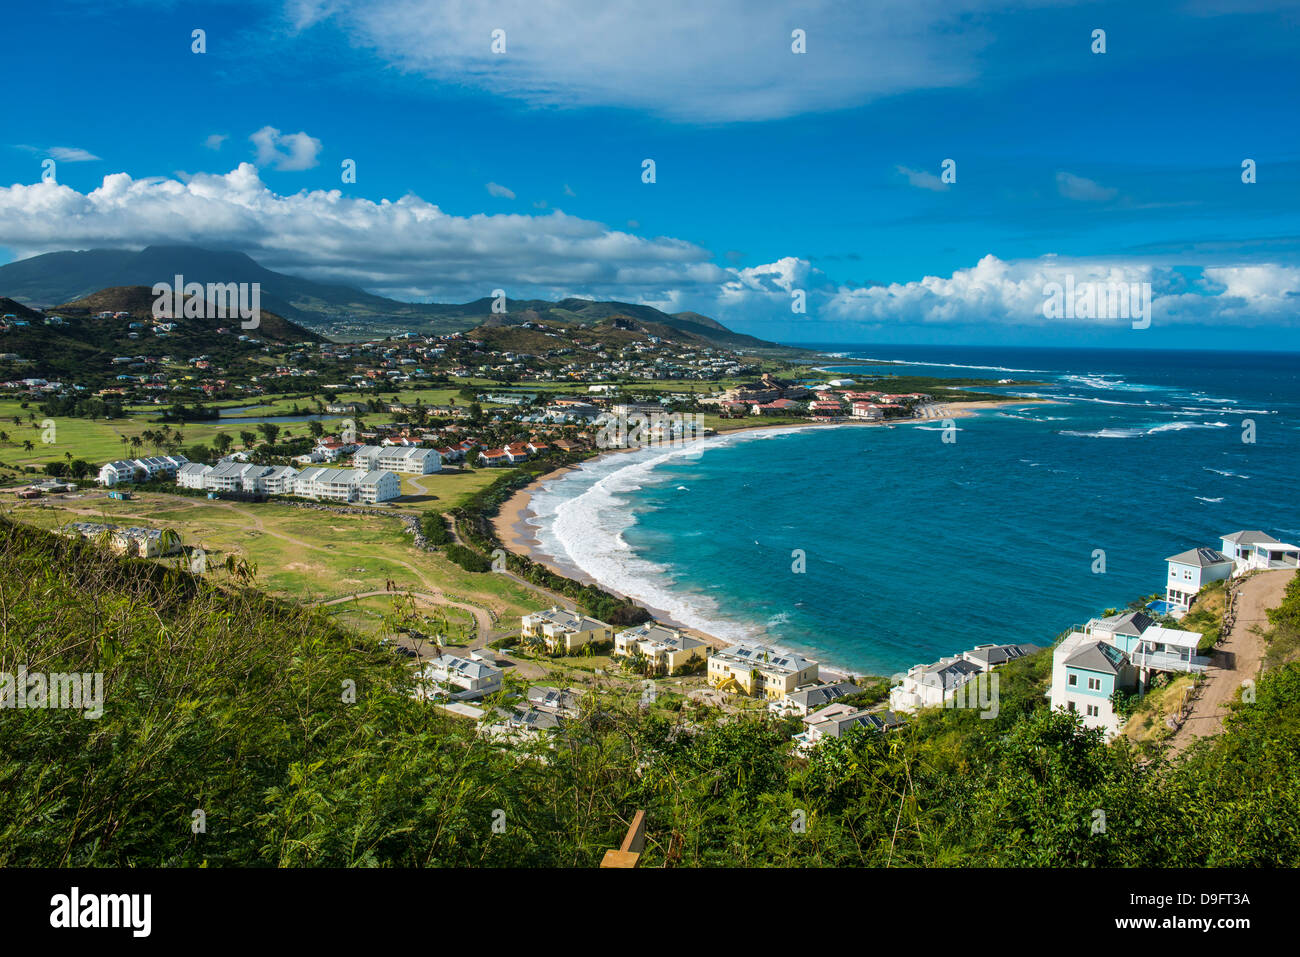 View over North Frigate Bay on St. Kitts, St. Kitts and Nevis, Leeward Islands, West Indies, Caribbean - Stock Image